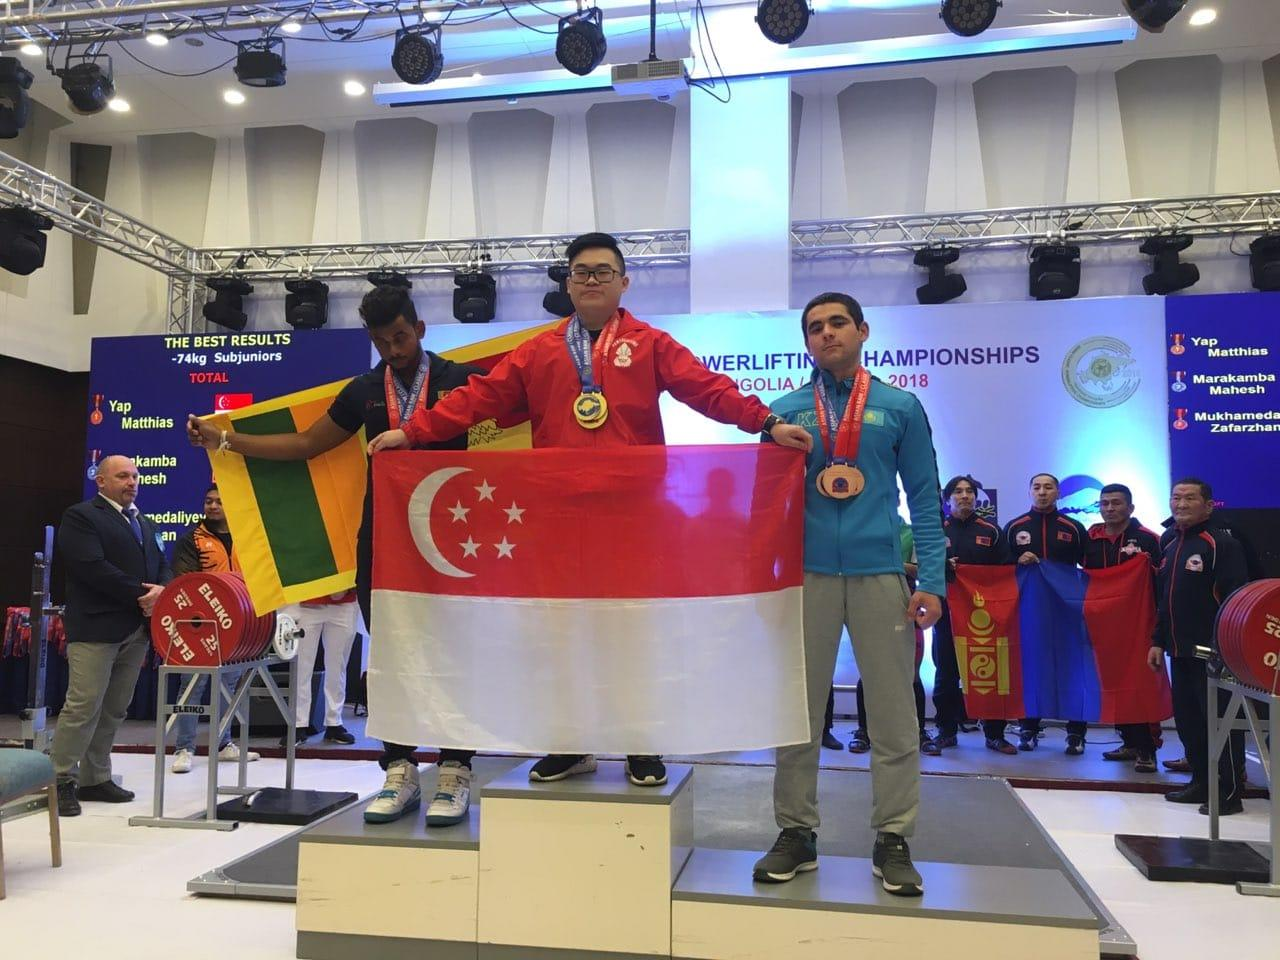 Singaporean Yap brothers win 6 golds at Asian Classic Powerlifting Championships